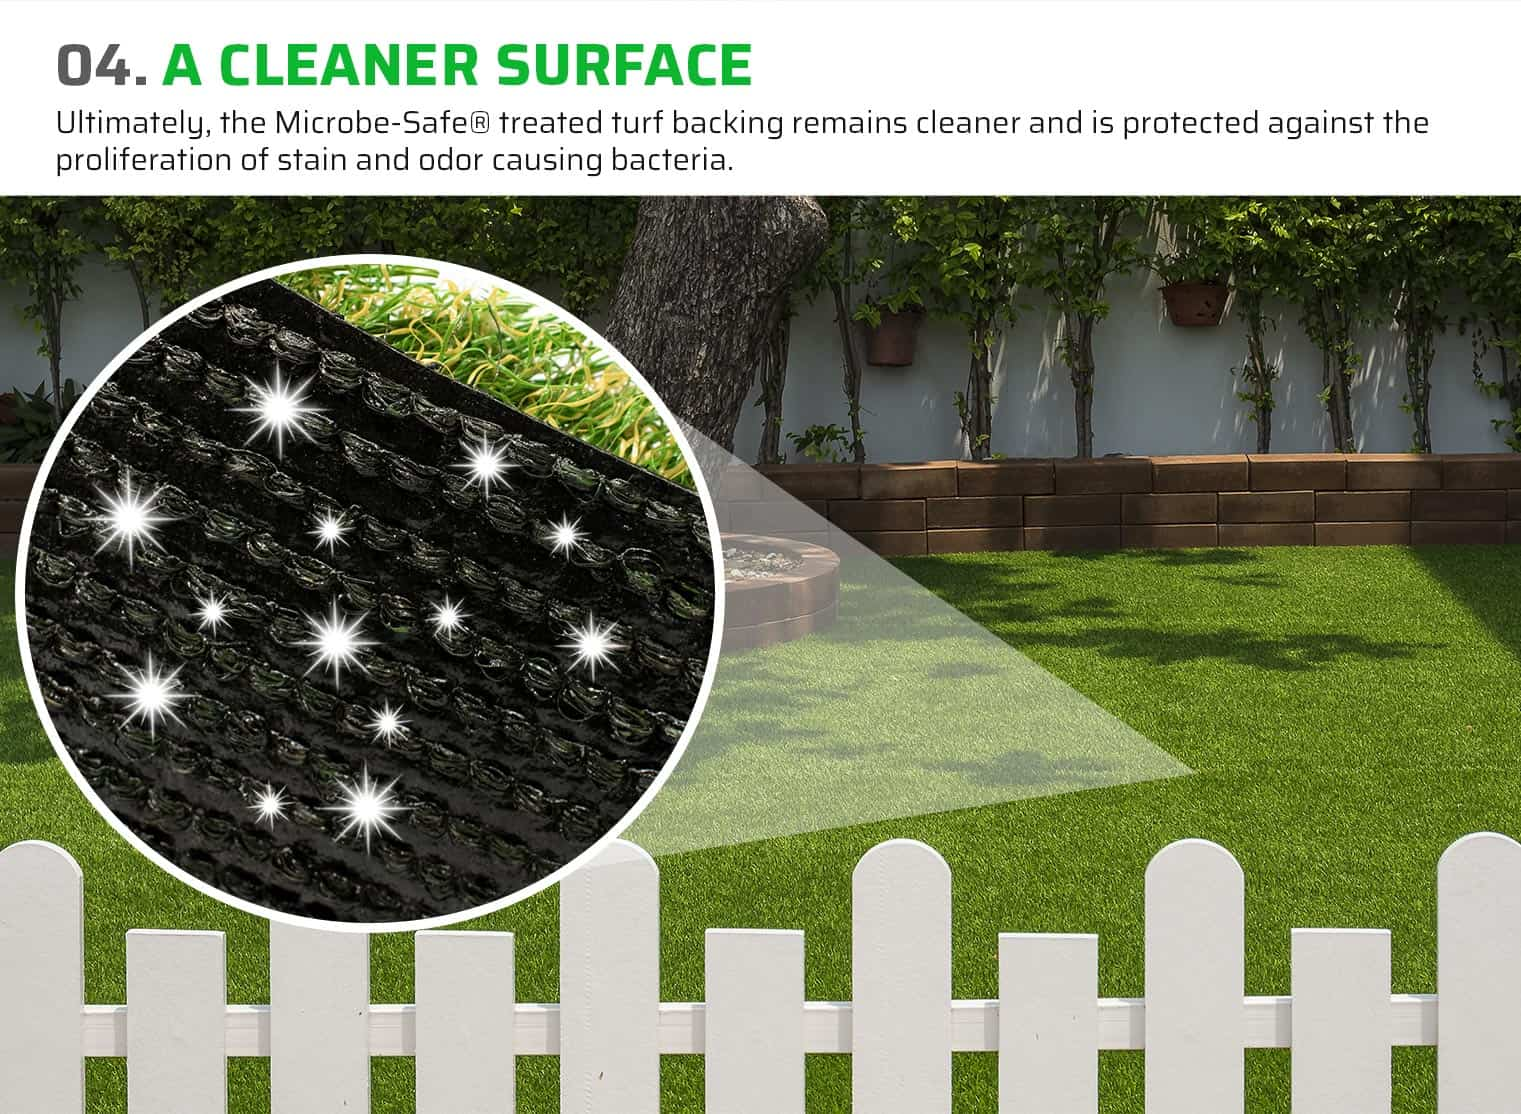 04. A Cleaner Surface